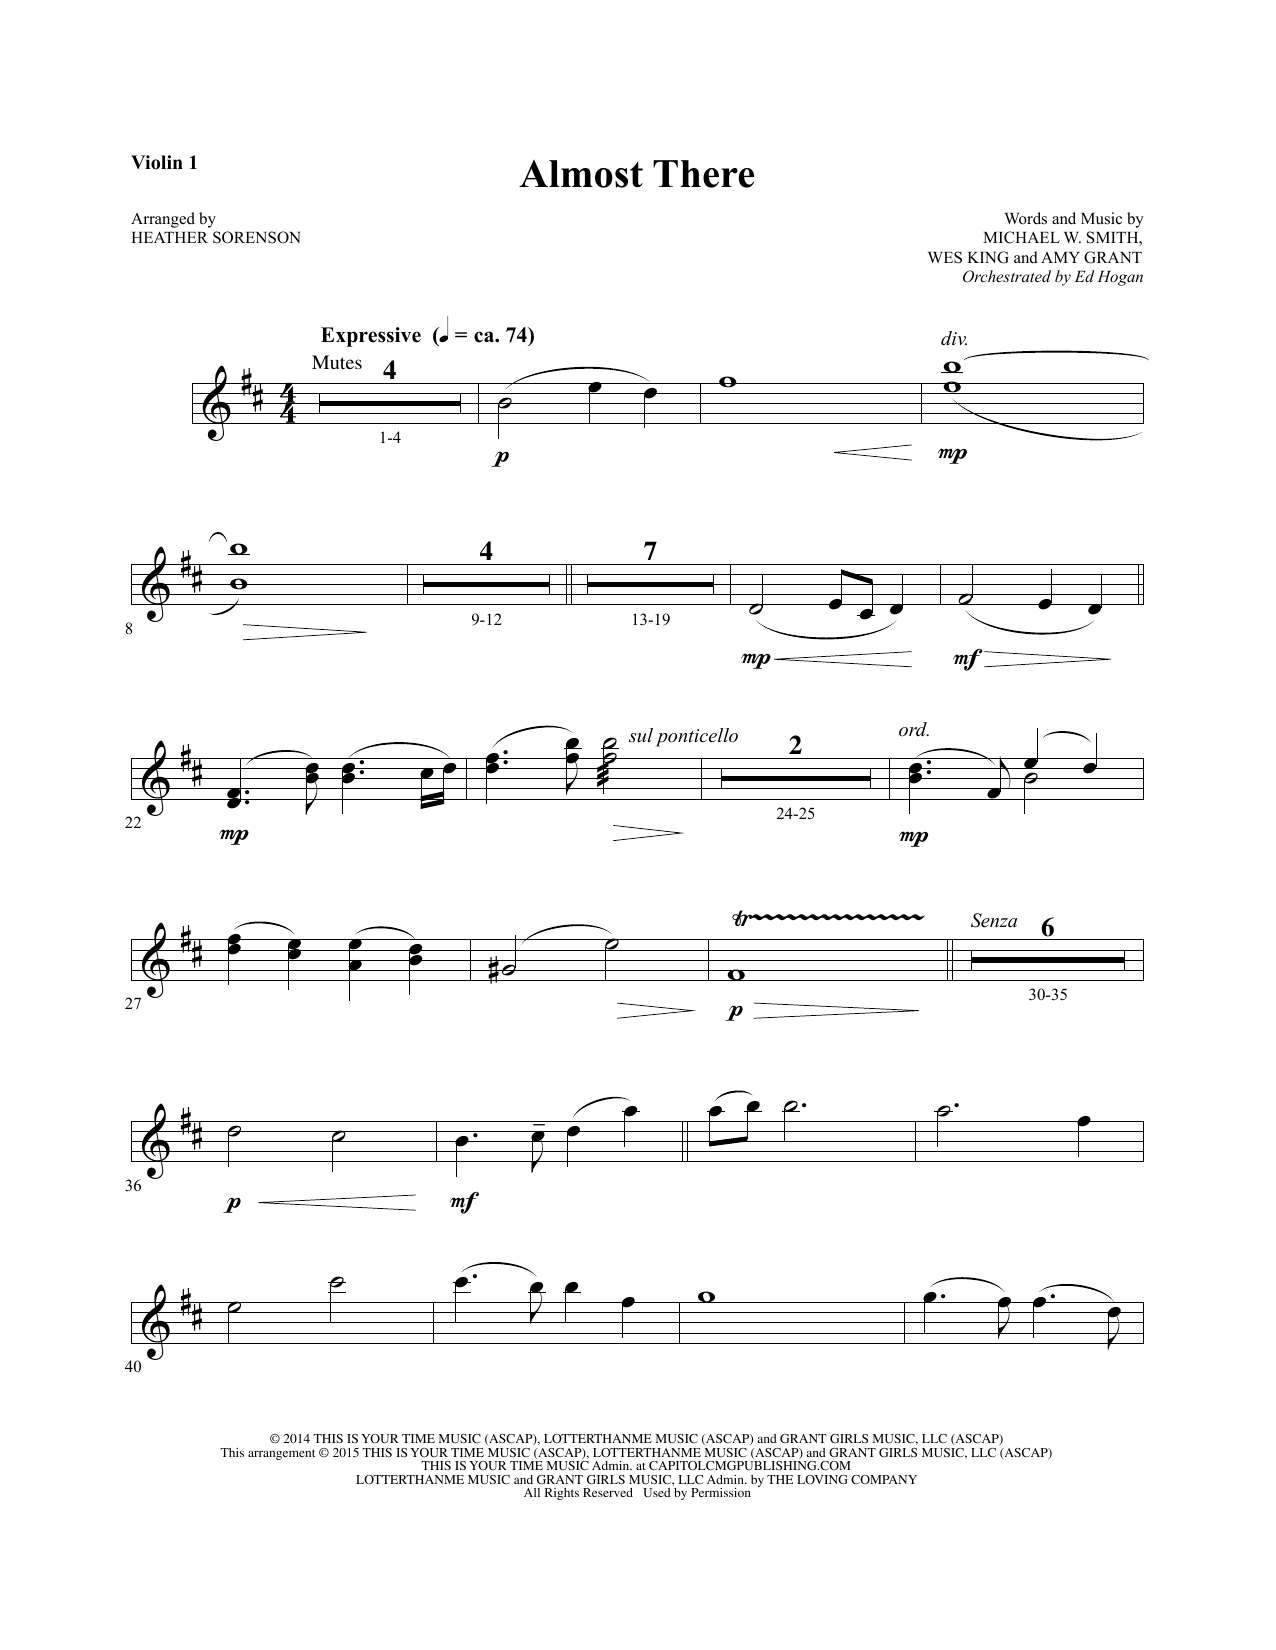 Almost There - Violin 1 sheet music